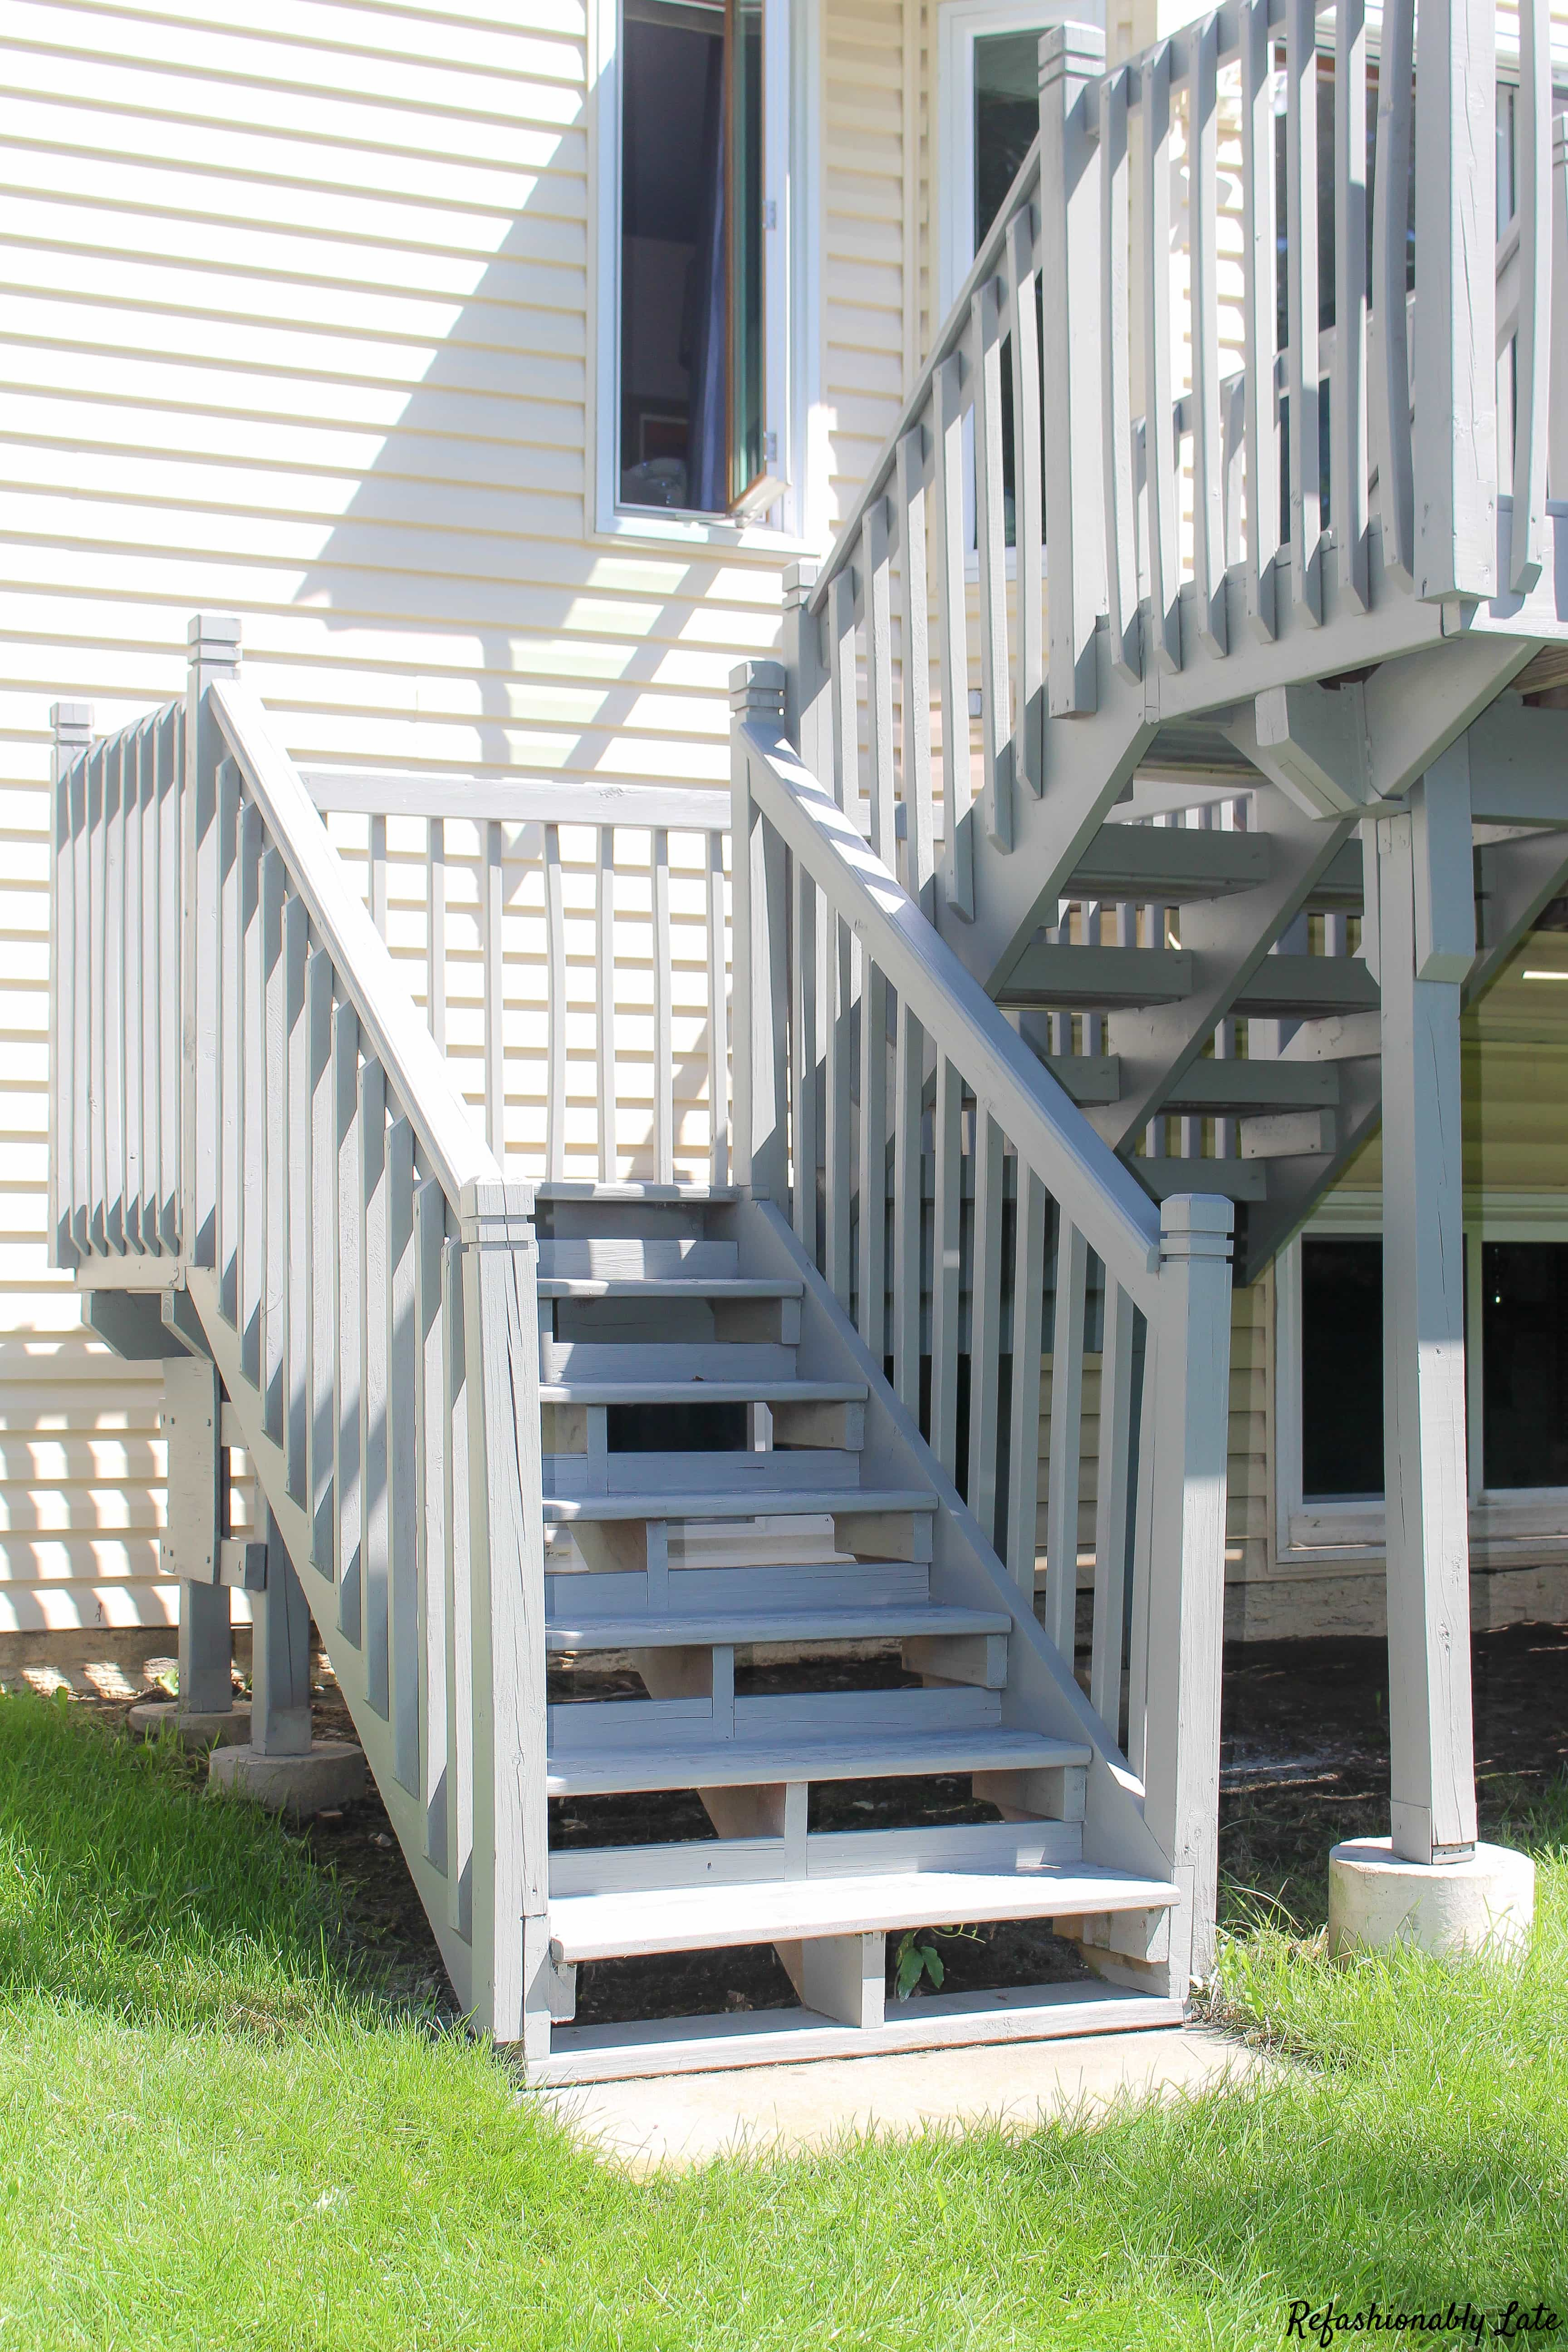 A fresh coat of paint how to paint your deck refashionably late a fresh coat of paint how to paint your deck refashionablylate baanklon Images